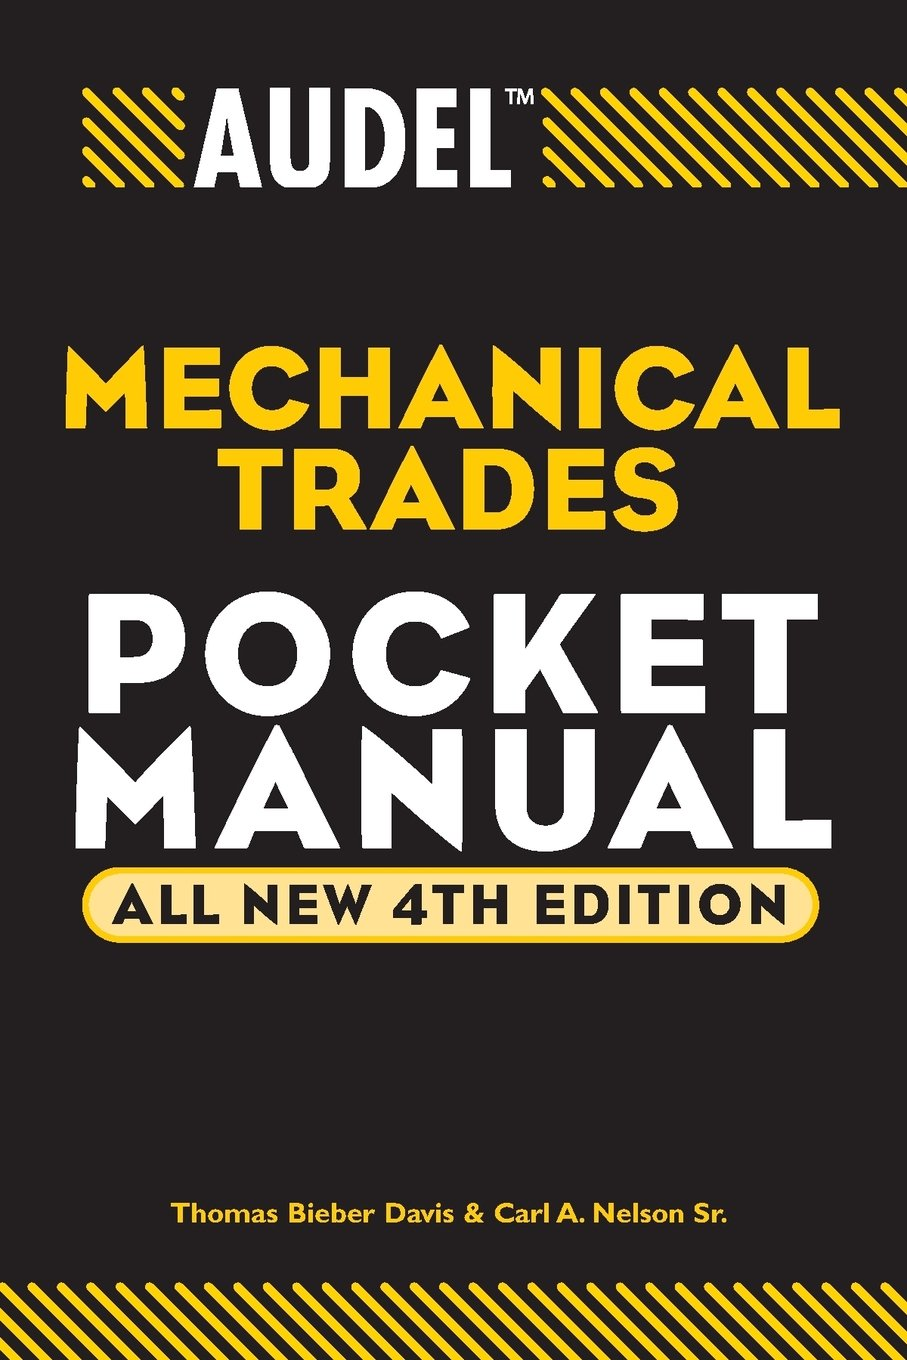 Audel Mechanical Trades Pocket Manual: Thomas B. Davis, Carl A. Nelson:  9780764541704: Amazon.com: Books